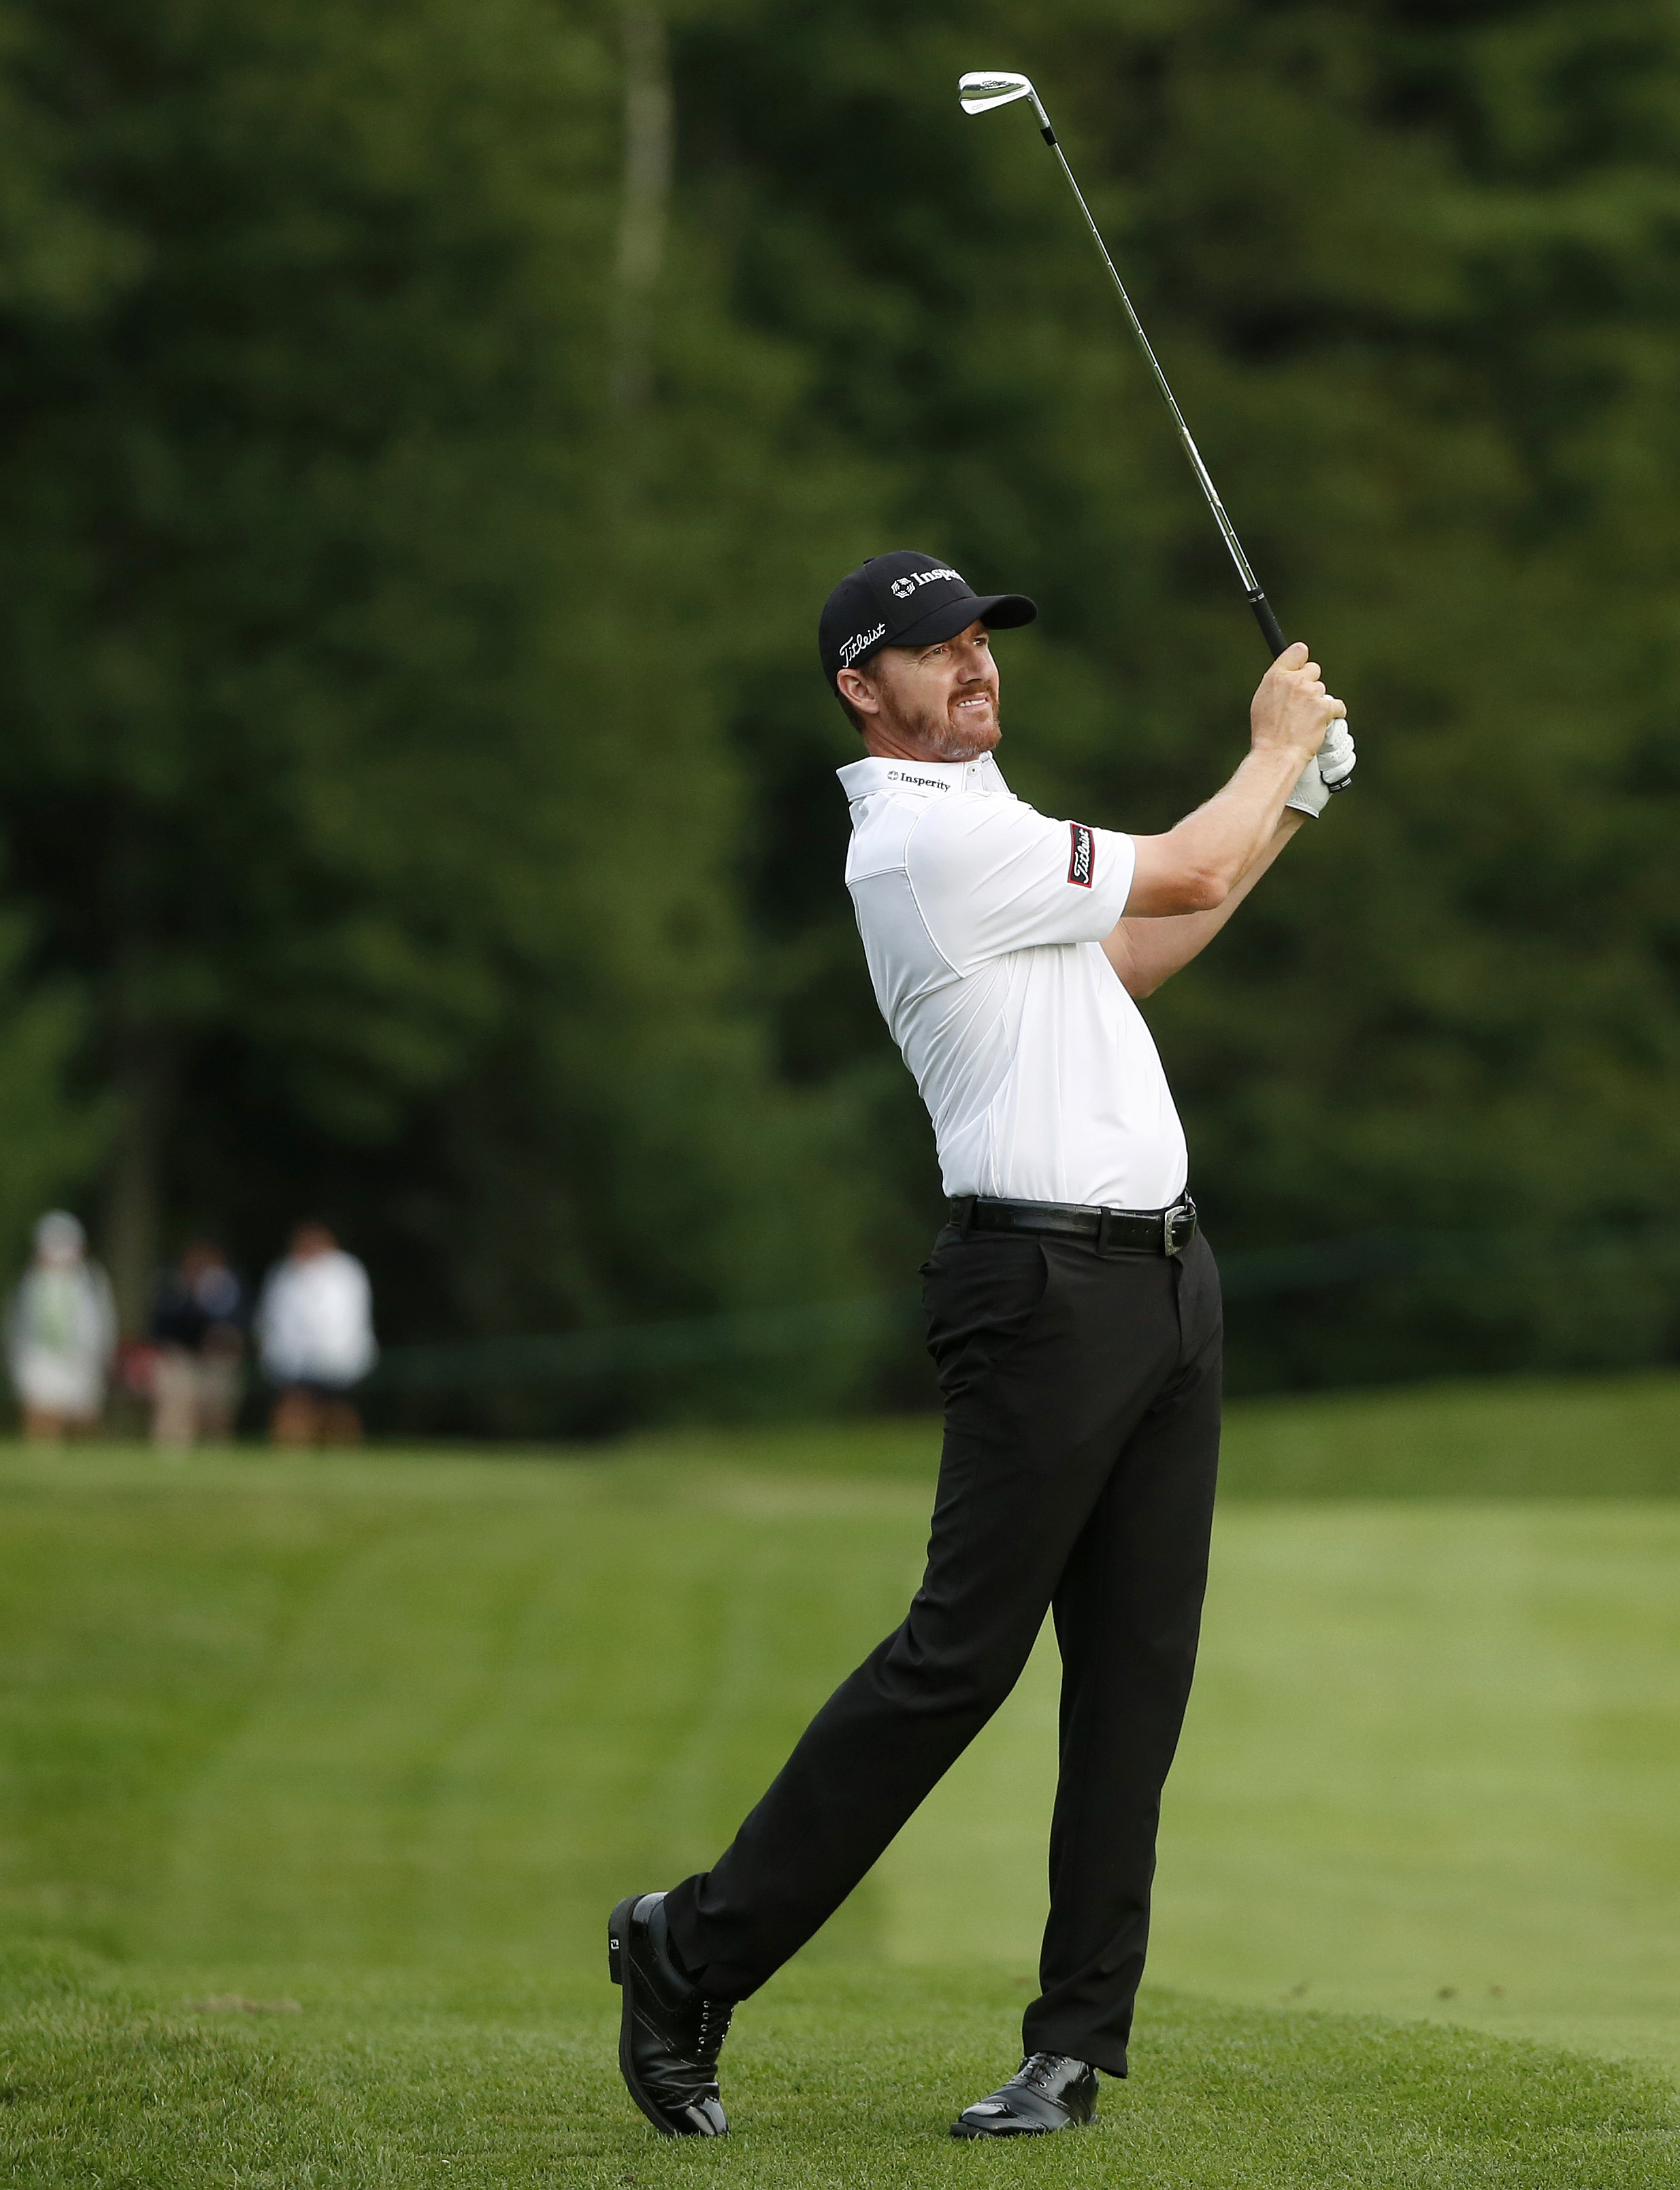 Jimmy Walker watches his shot from the fairway on the ninth hole during the second round of the Deutsche Bank Championship golf tournament, Saturday, Sept. 3, 2016, in Norton, Mass. (AP Photo/Michael Dwyer)